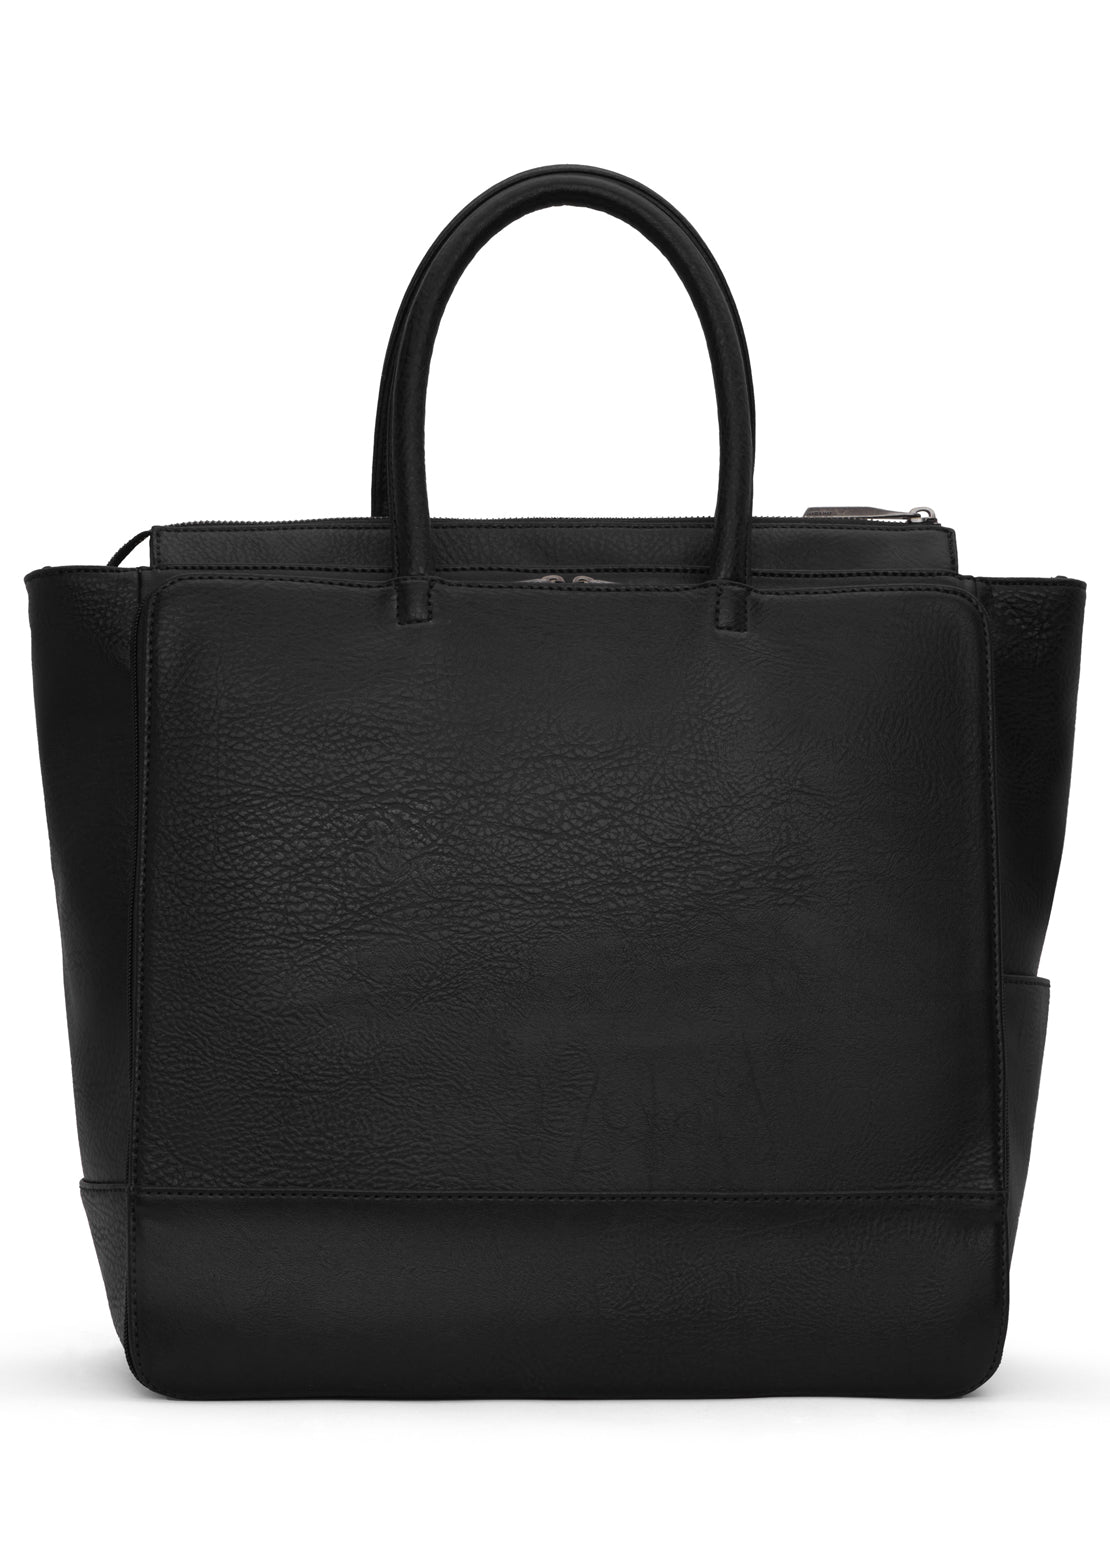 Matt & Nat Percio Dwell Diaper Bag Black